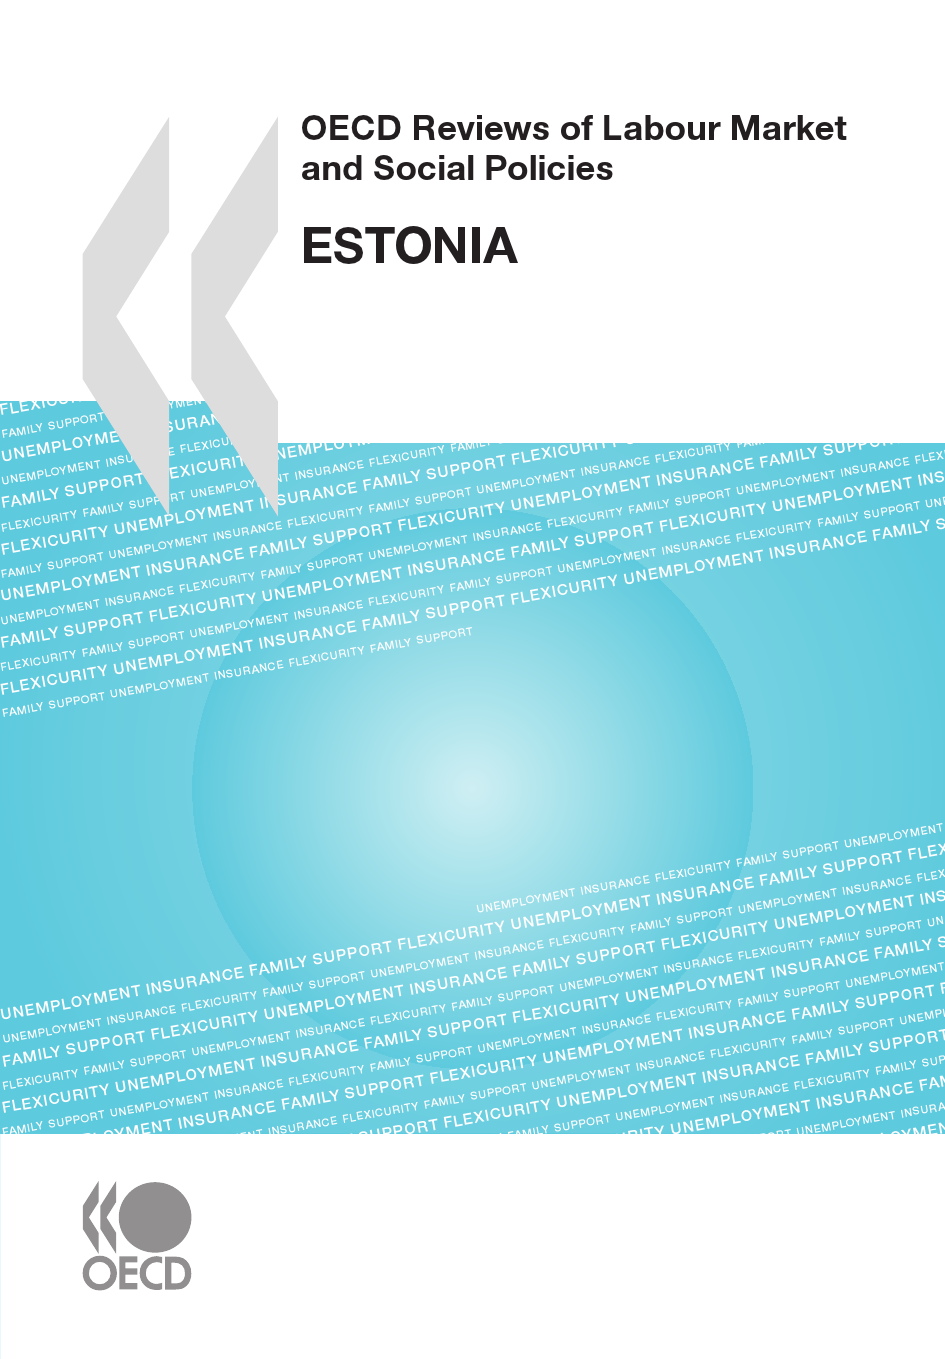 an analysis of labour market policy in estonia Saint helena labour market strategy 2011 page 7 such as in bars, restaurants, hotels, tour guiding and shop assistants, as well as auxiliary services such as office clerks, cleaners, ict and food preparation.